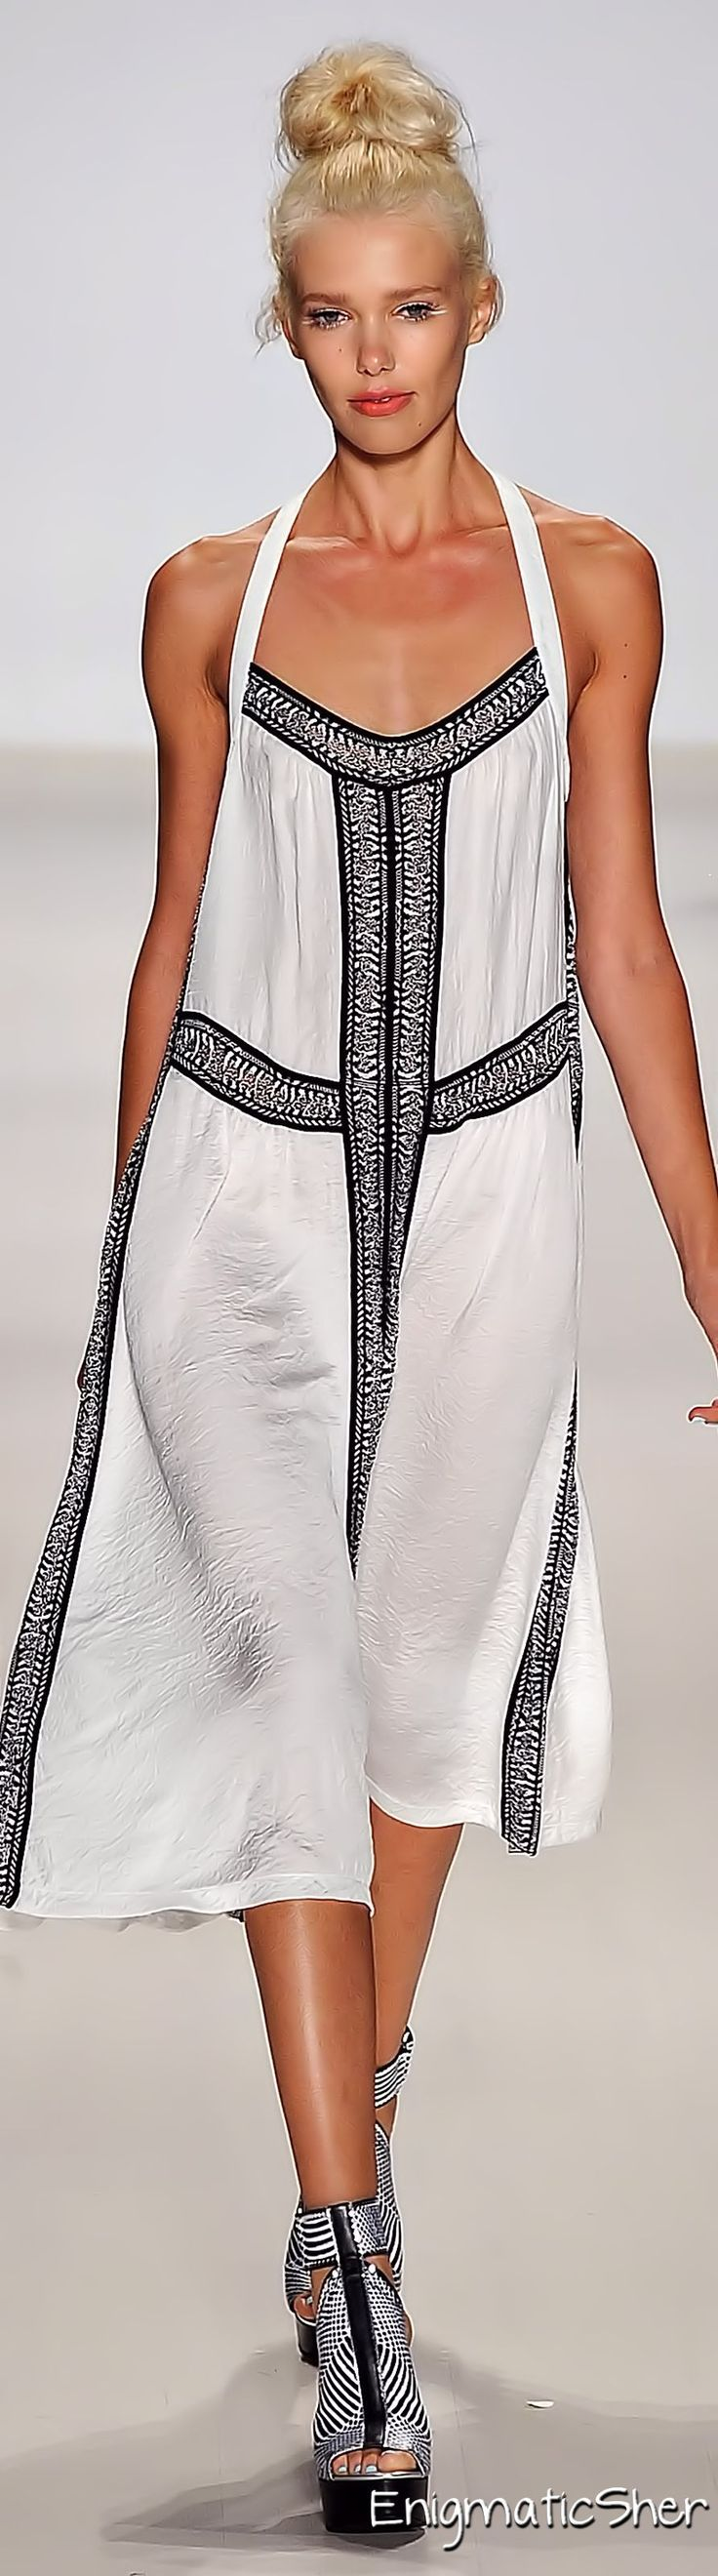 Nanette Lepore Spring Summer 2015 Ready-To-Wear